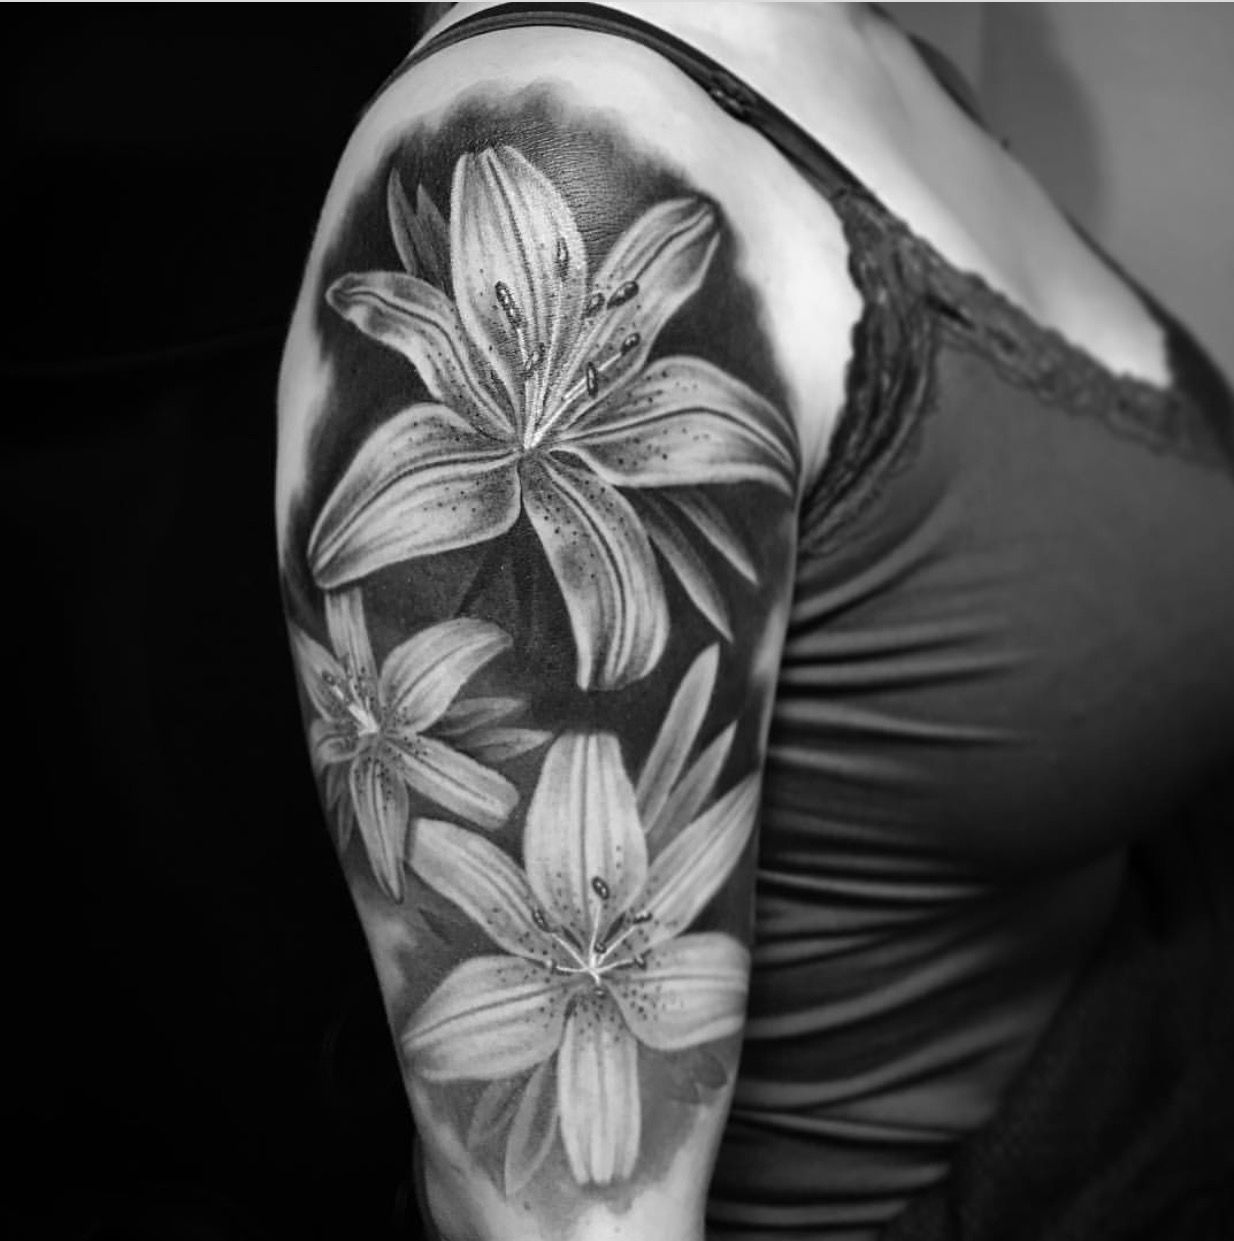 Black and white tiger lily tattoo tattoos pinterest tiger lily black and white tiger lily tattoo izmirmasajfo